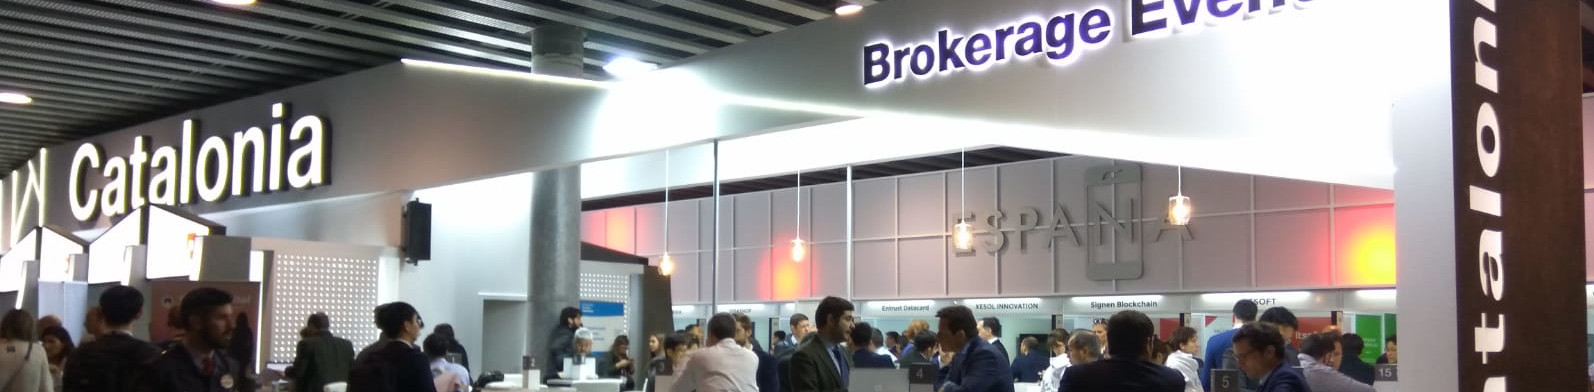 Brokerage Event Mobile World Congress